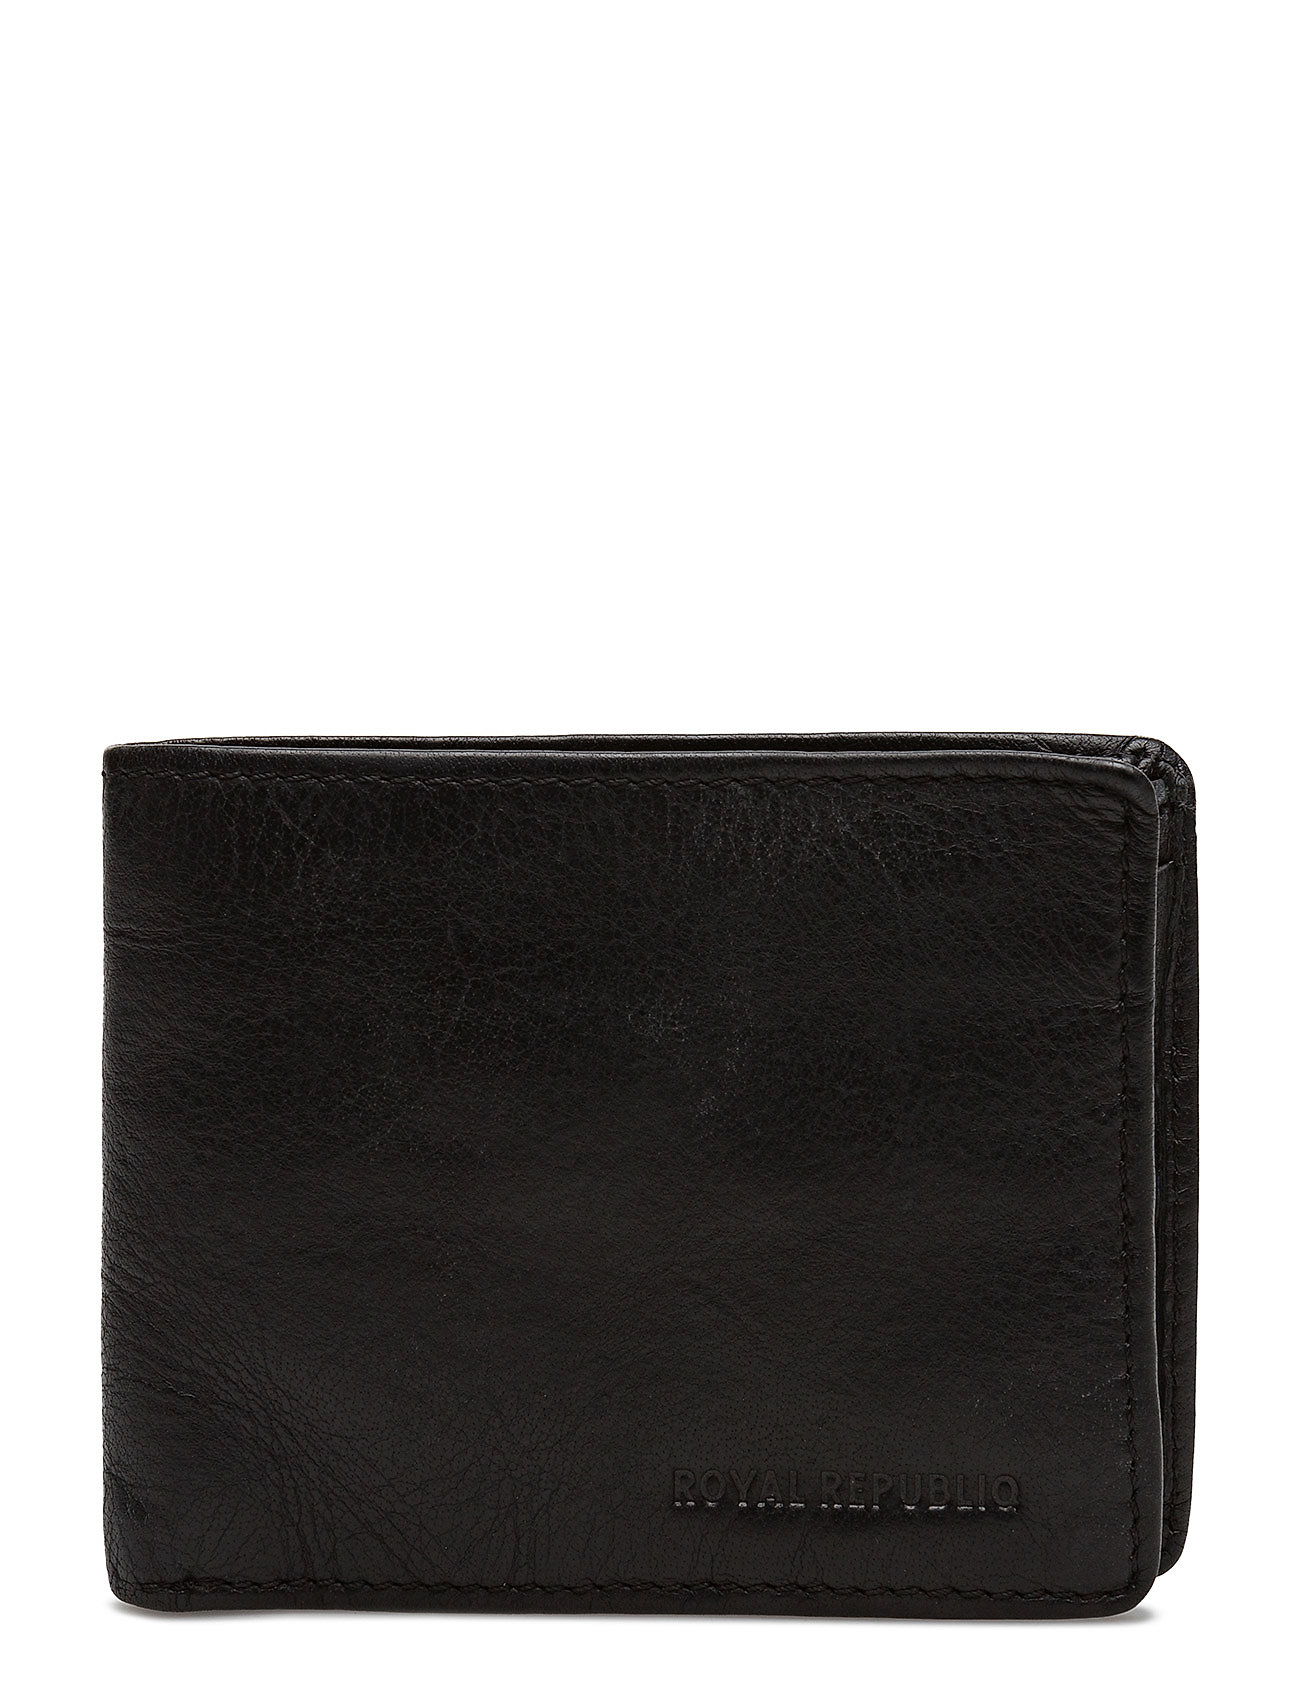 Royal RepubliQ Wayne Wallet BRN - BLACK